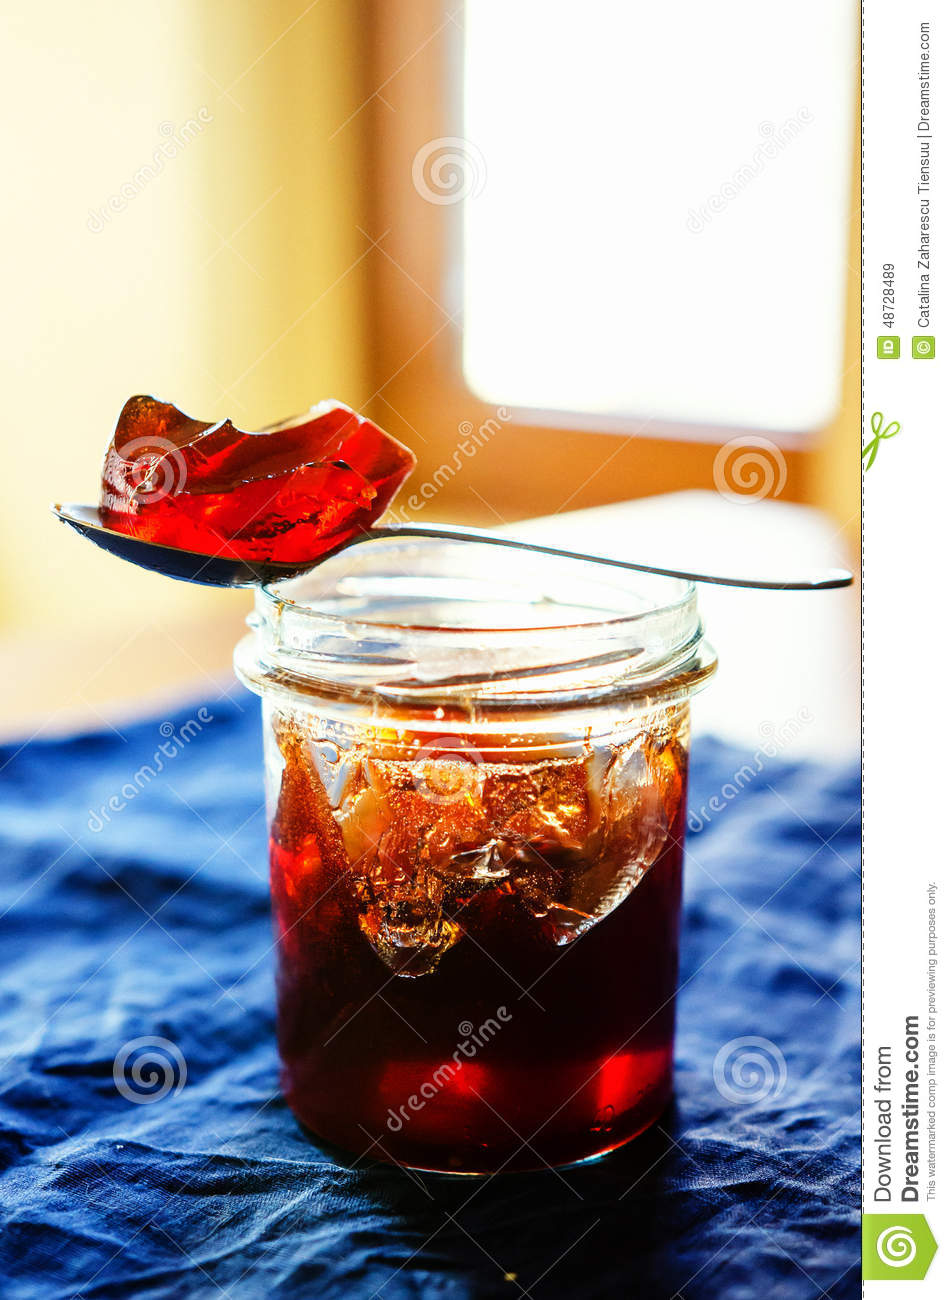 Medlar jelly in a jar and a piece of jelly in the spoon.